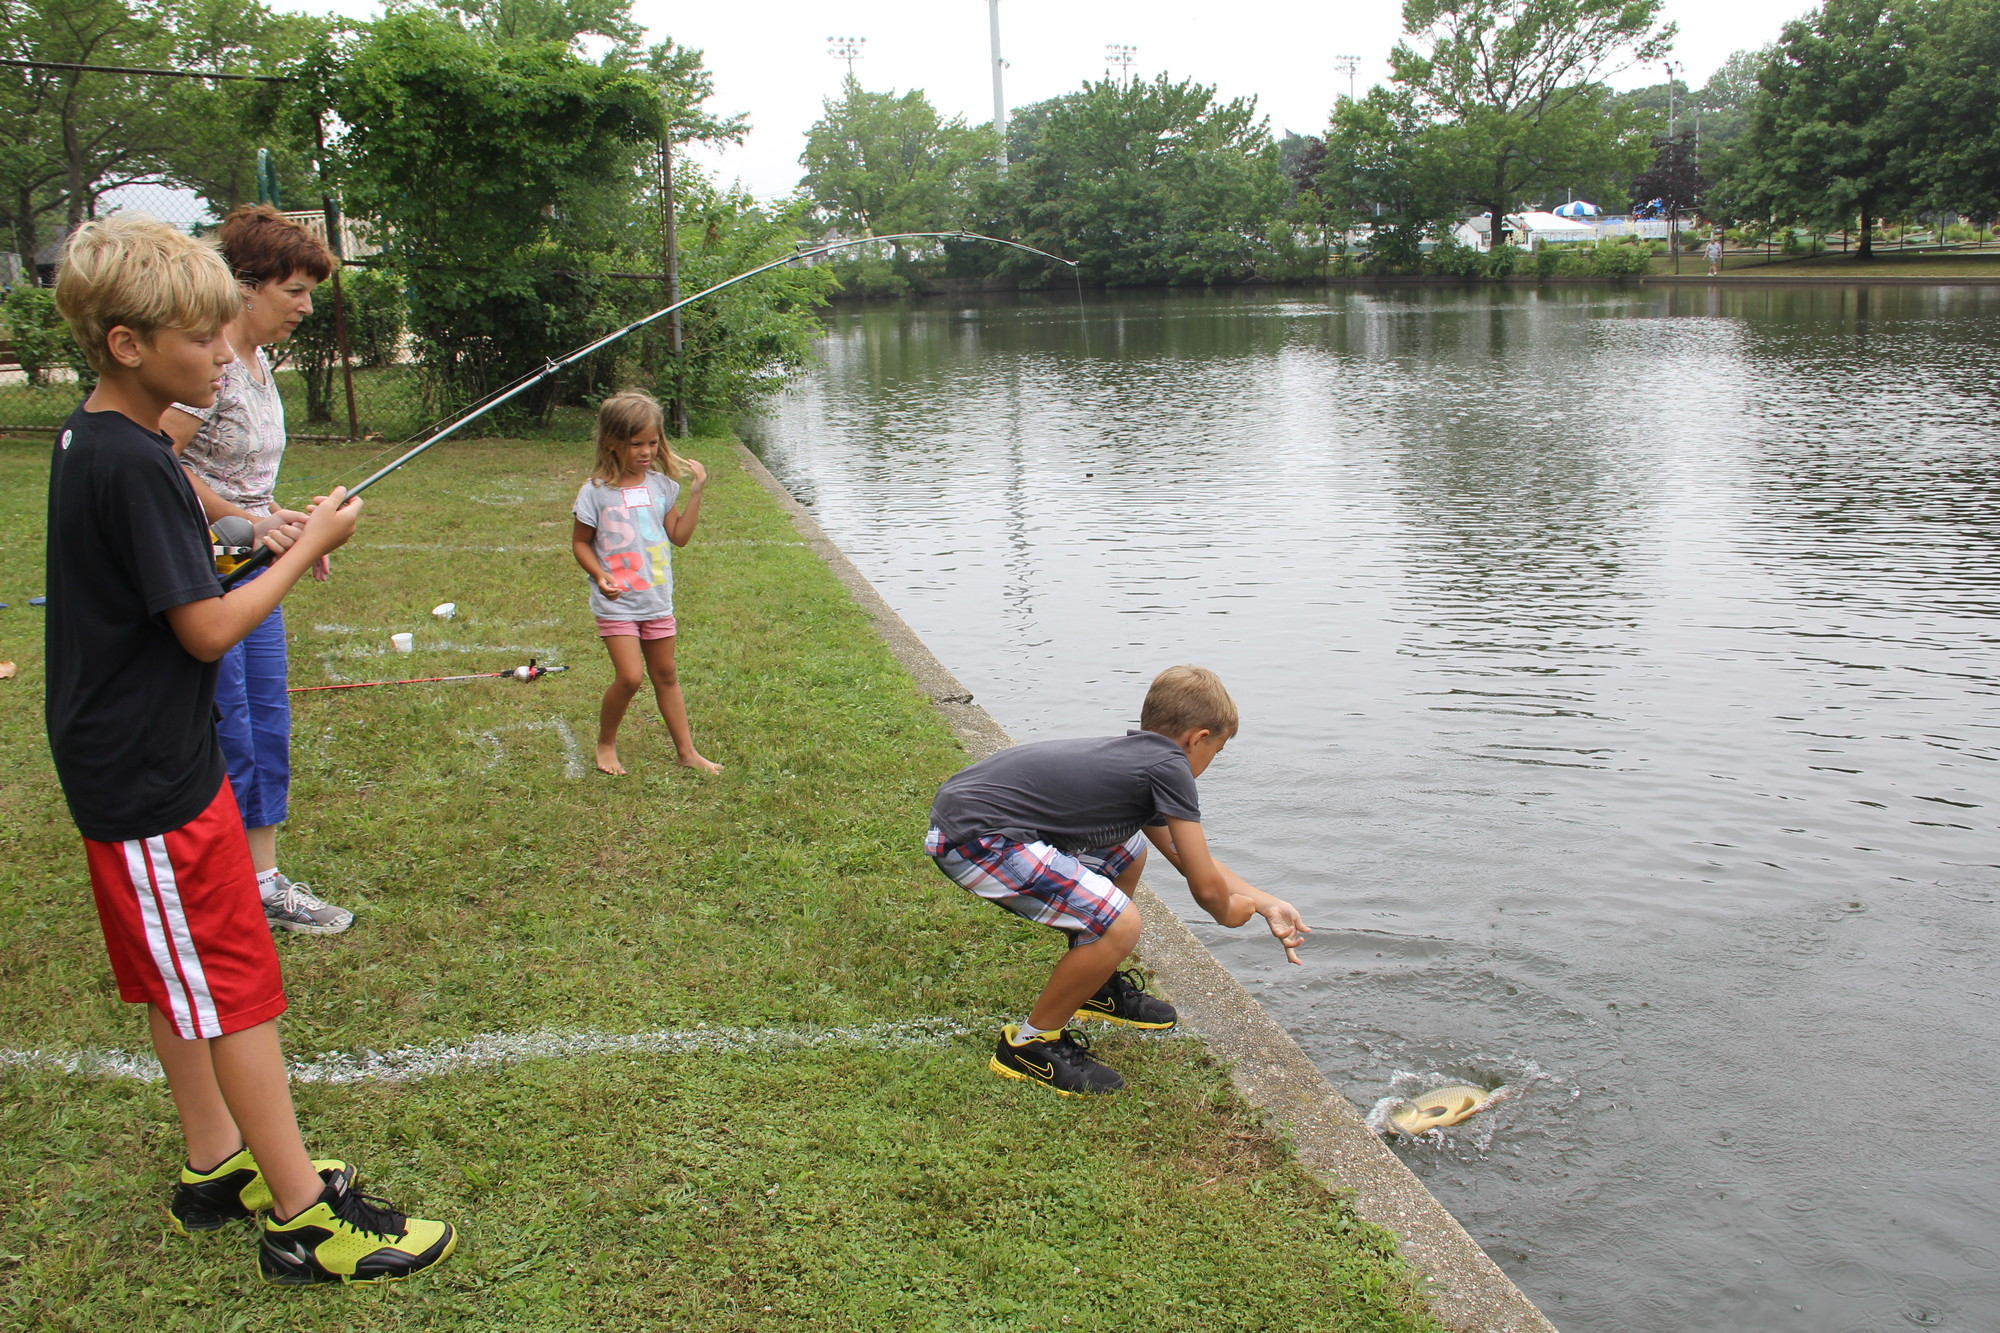 Jesper Dalessandro, 11, reeled in a large bass while his brother Tyler, 9, helped pull it from the water, as their grandmother, Sue, and sister, Molly, 7, watched.